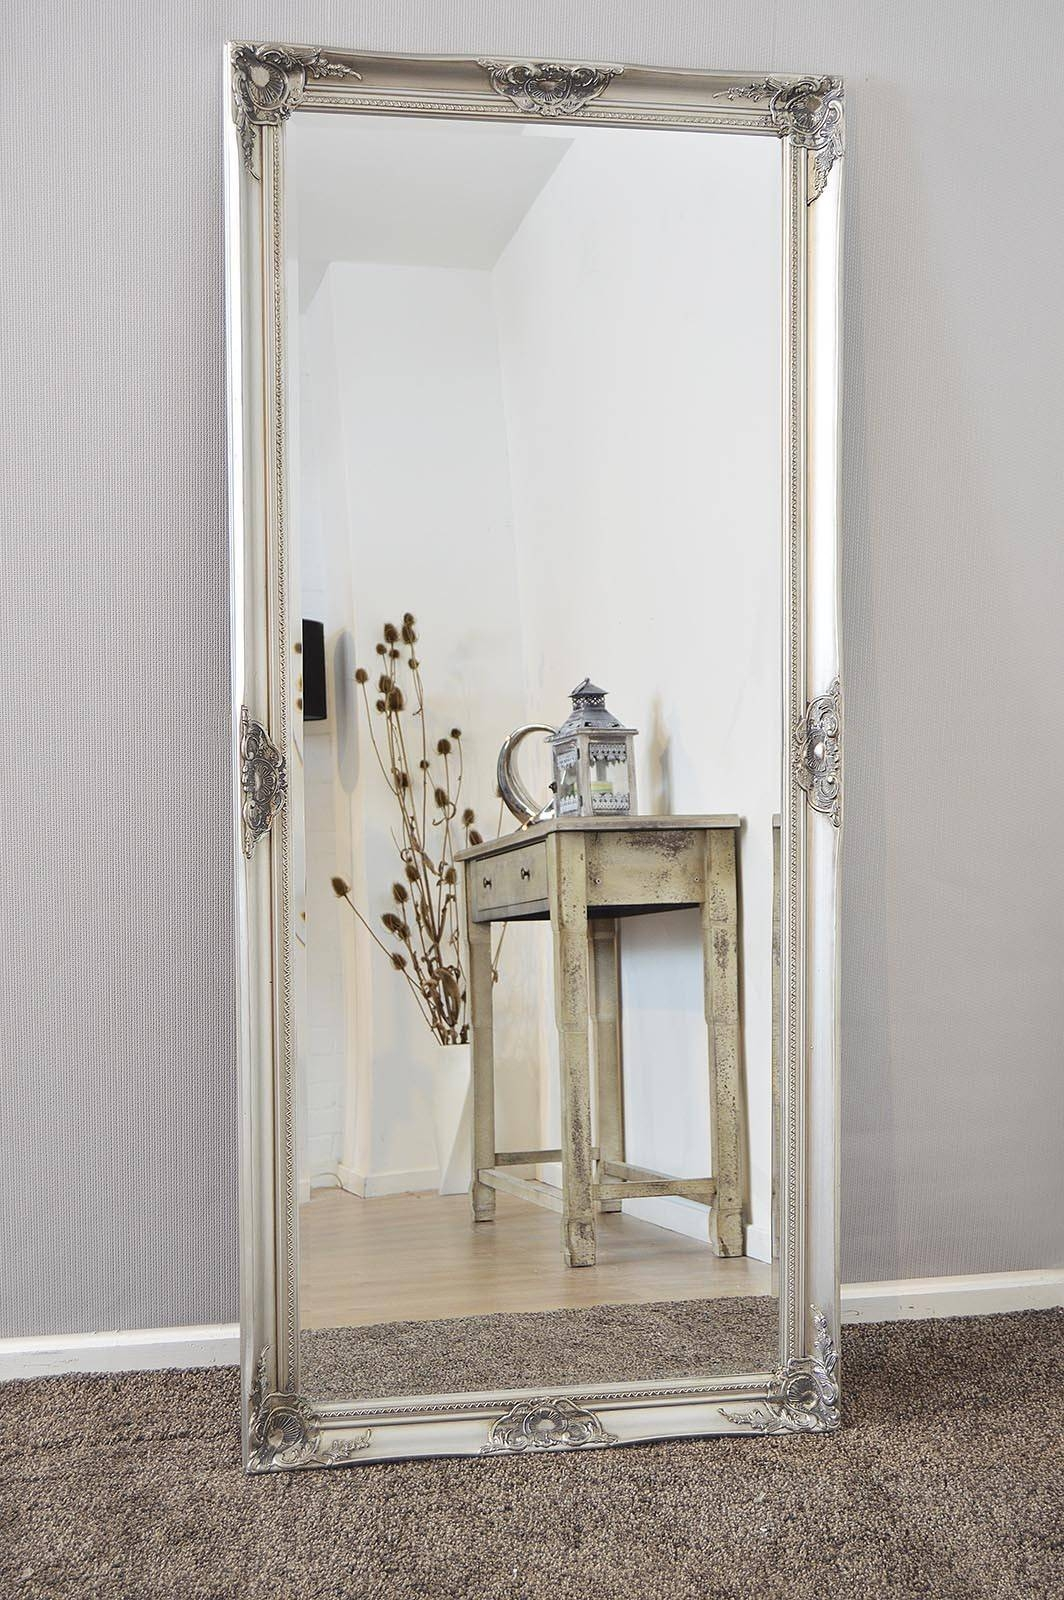 Shabby Chic Wall Mirror 22 Awesome Exterior With Large Silver With Large Ornate Wall Mirrors (View 9 of 15)